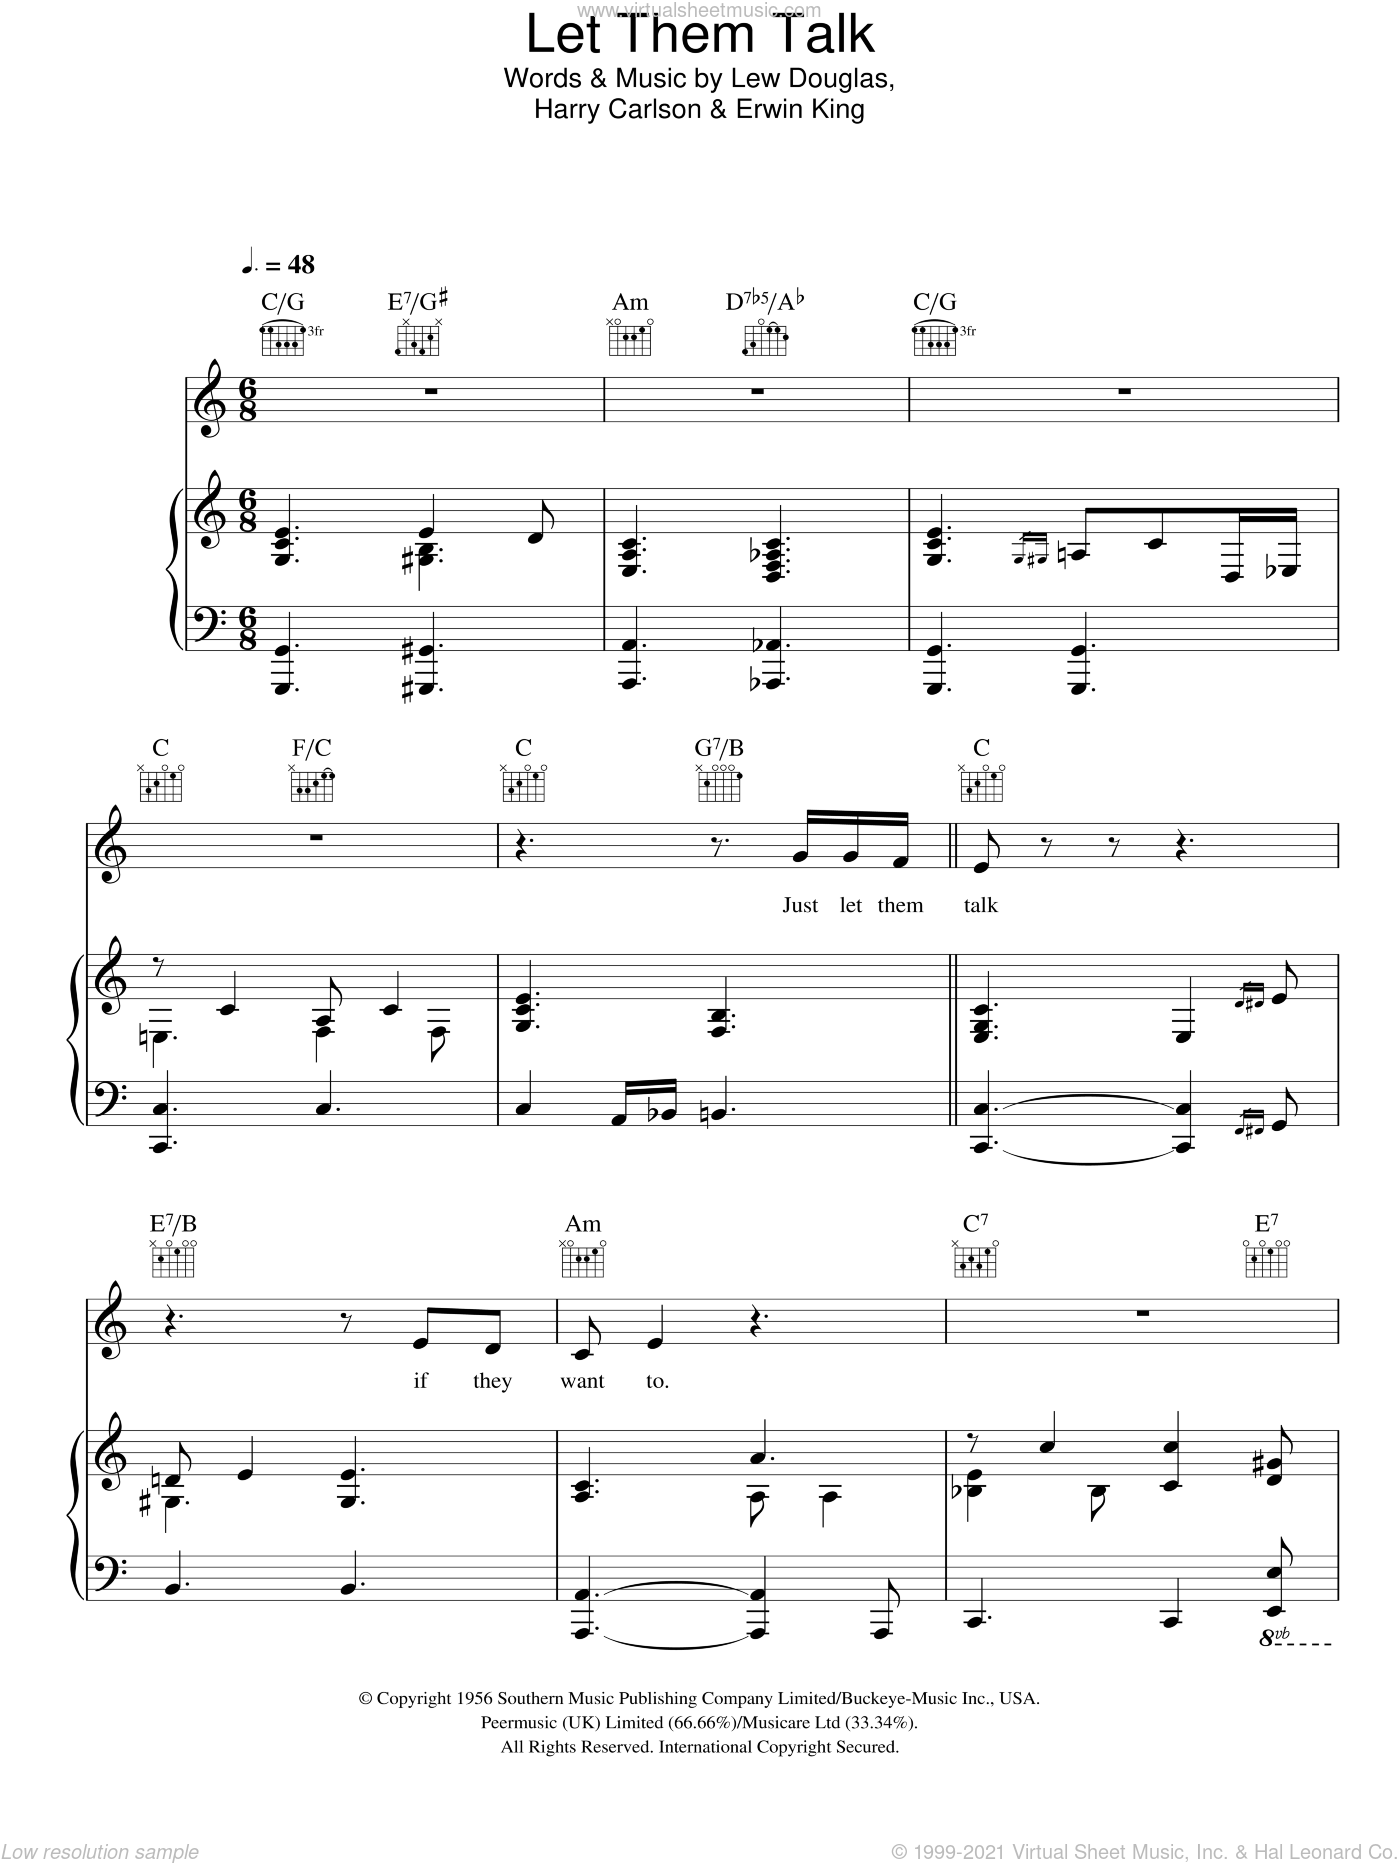 Let Them Talk sheet music for voice, piano or guitar by Lew Douglas